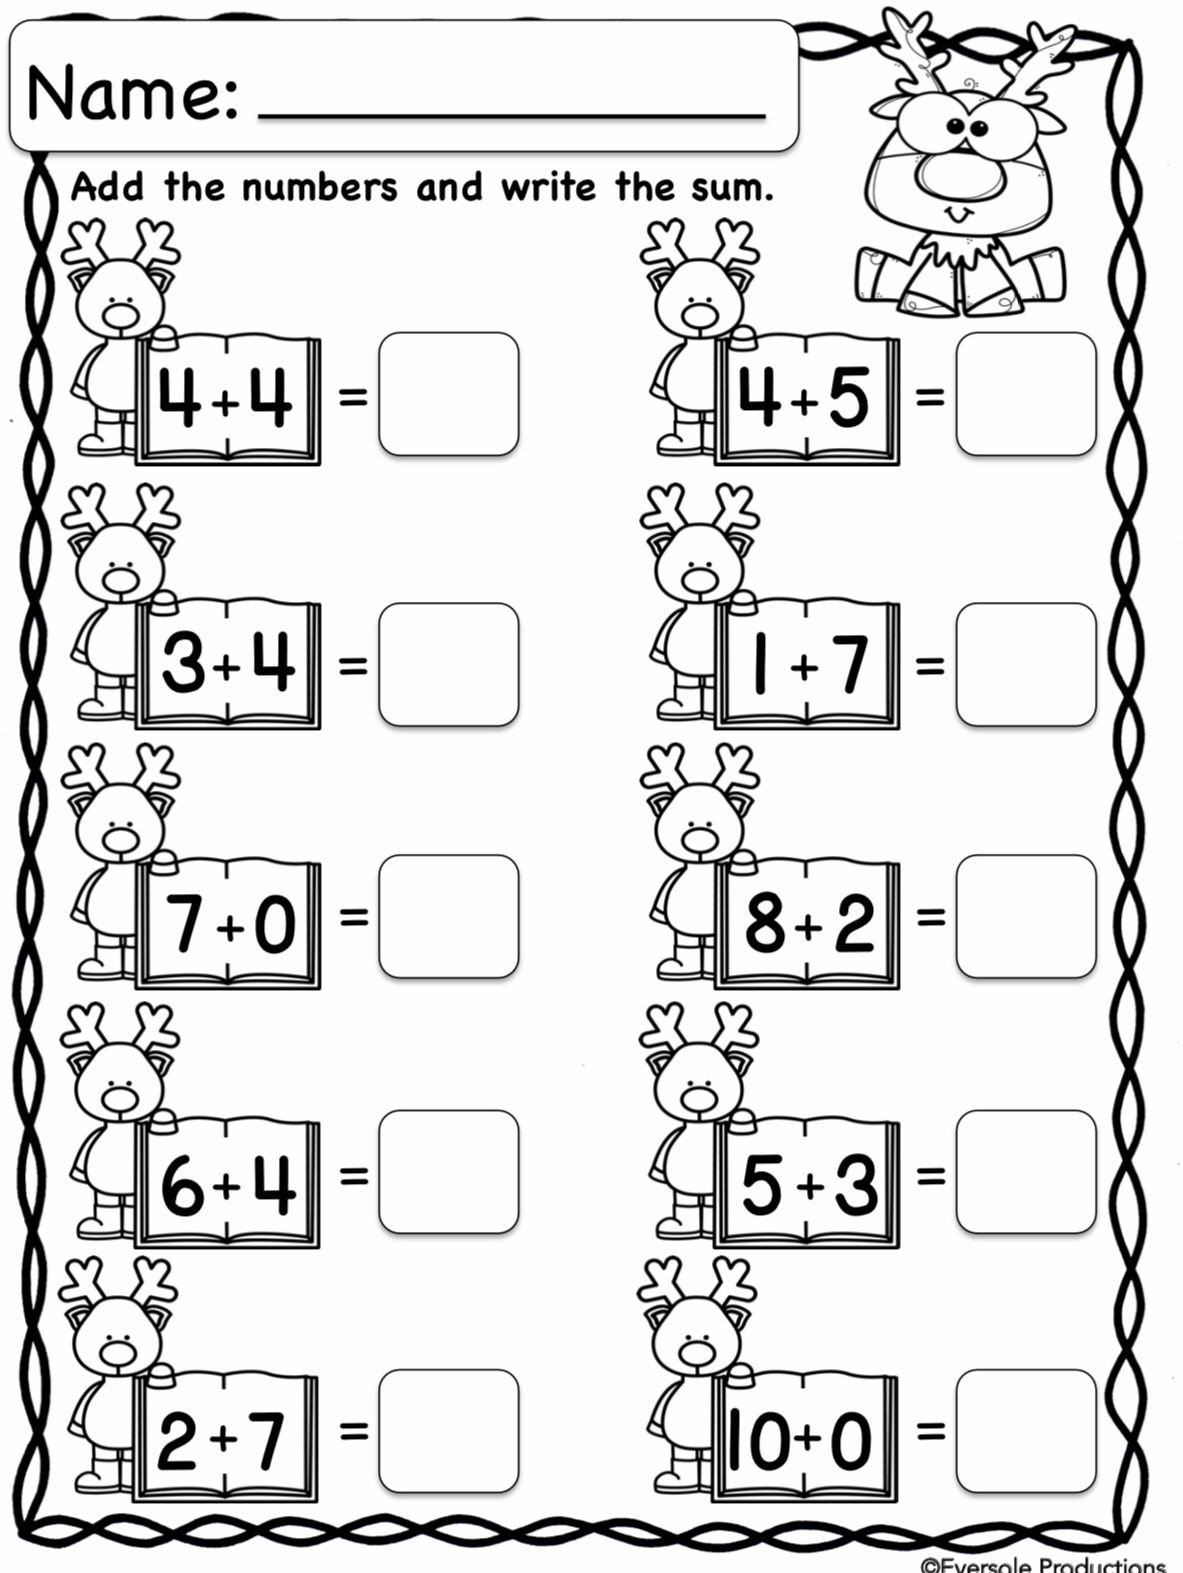 Christmas Counting Worksheets Kindergarten Christmas Math Adding and Subtracting within 10 No Prep